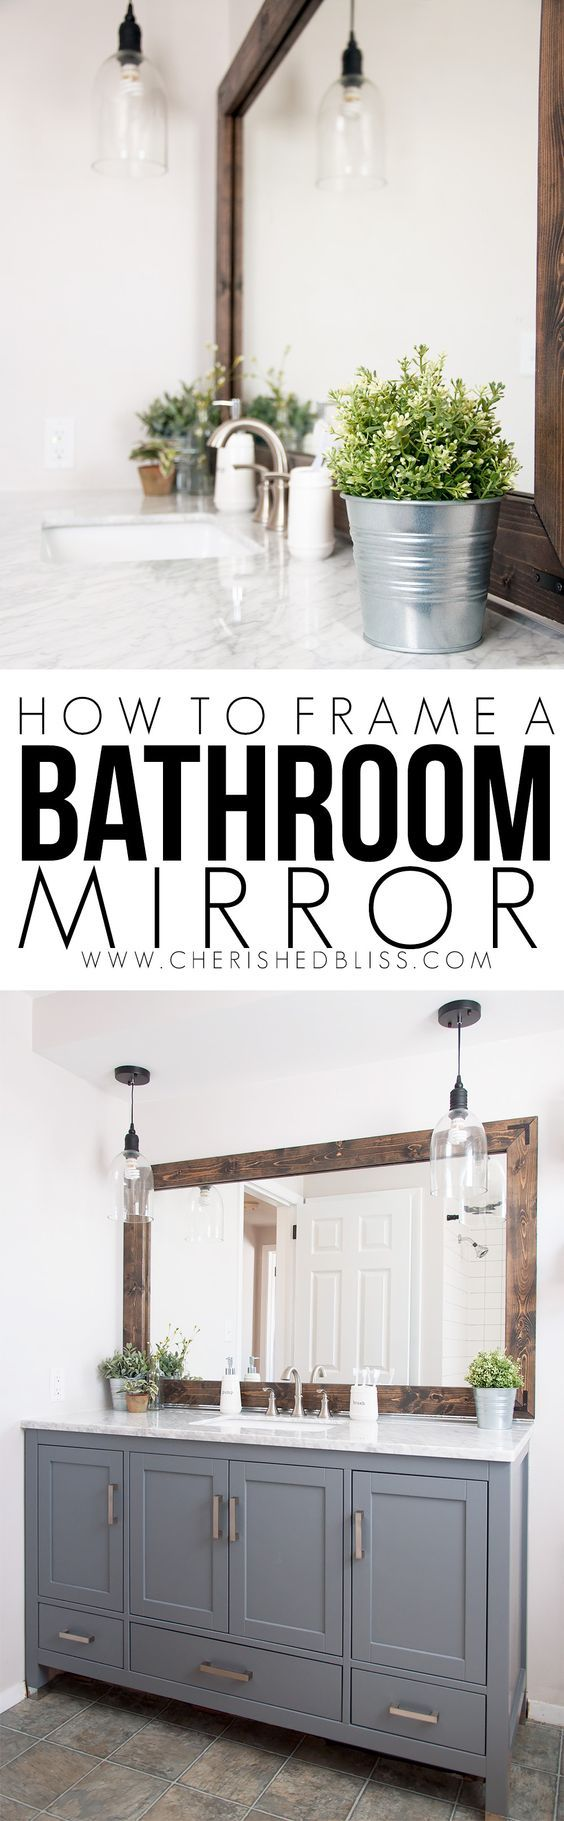 Improve The Value Of Your Bathroom With This Easy Tutorial On How To Frame A Bat